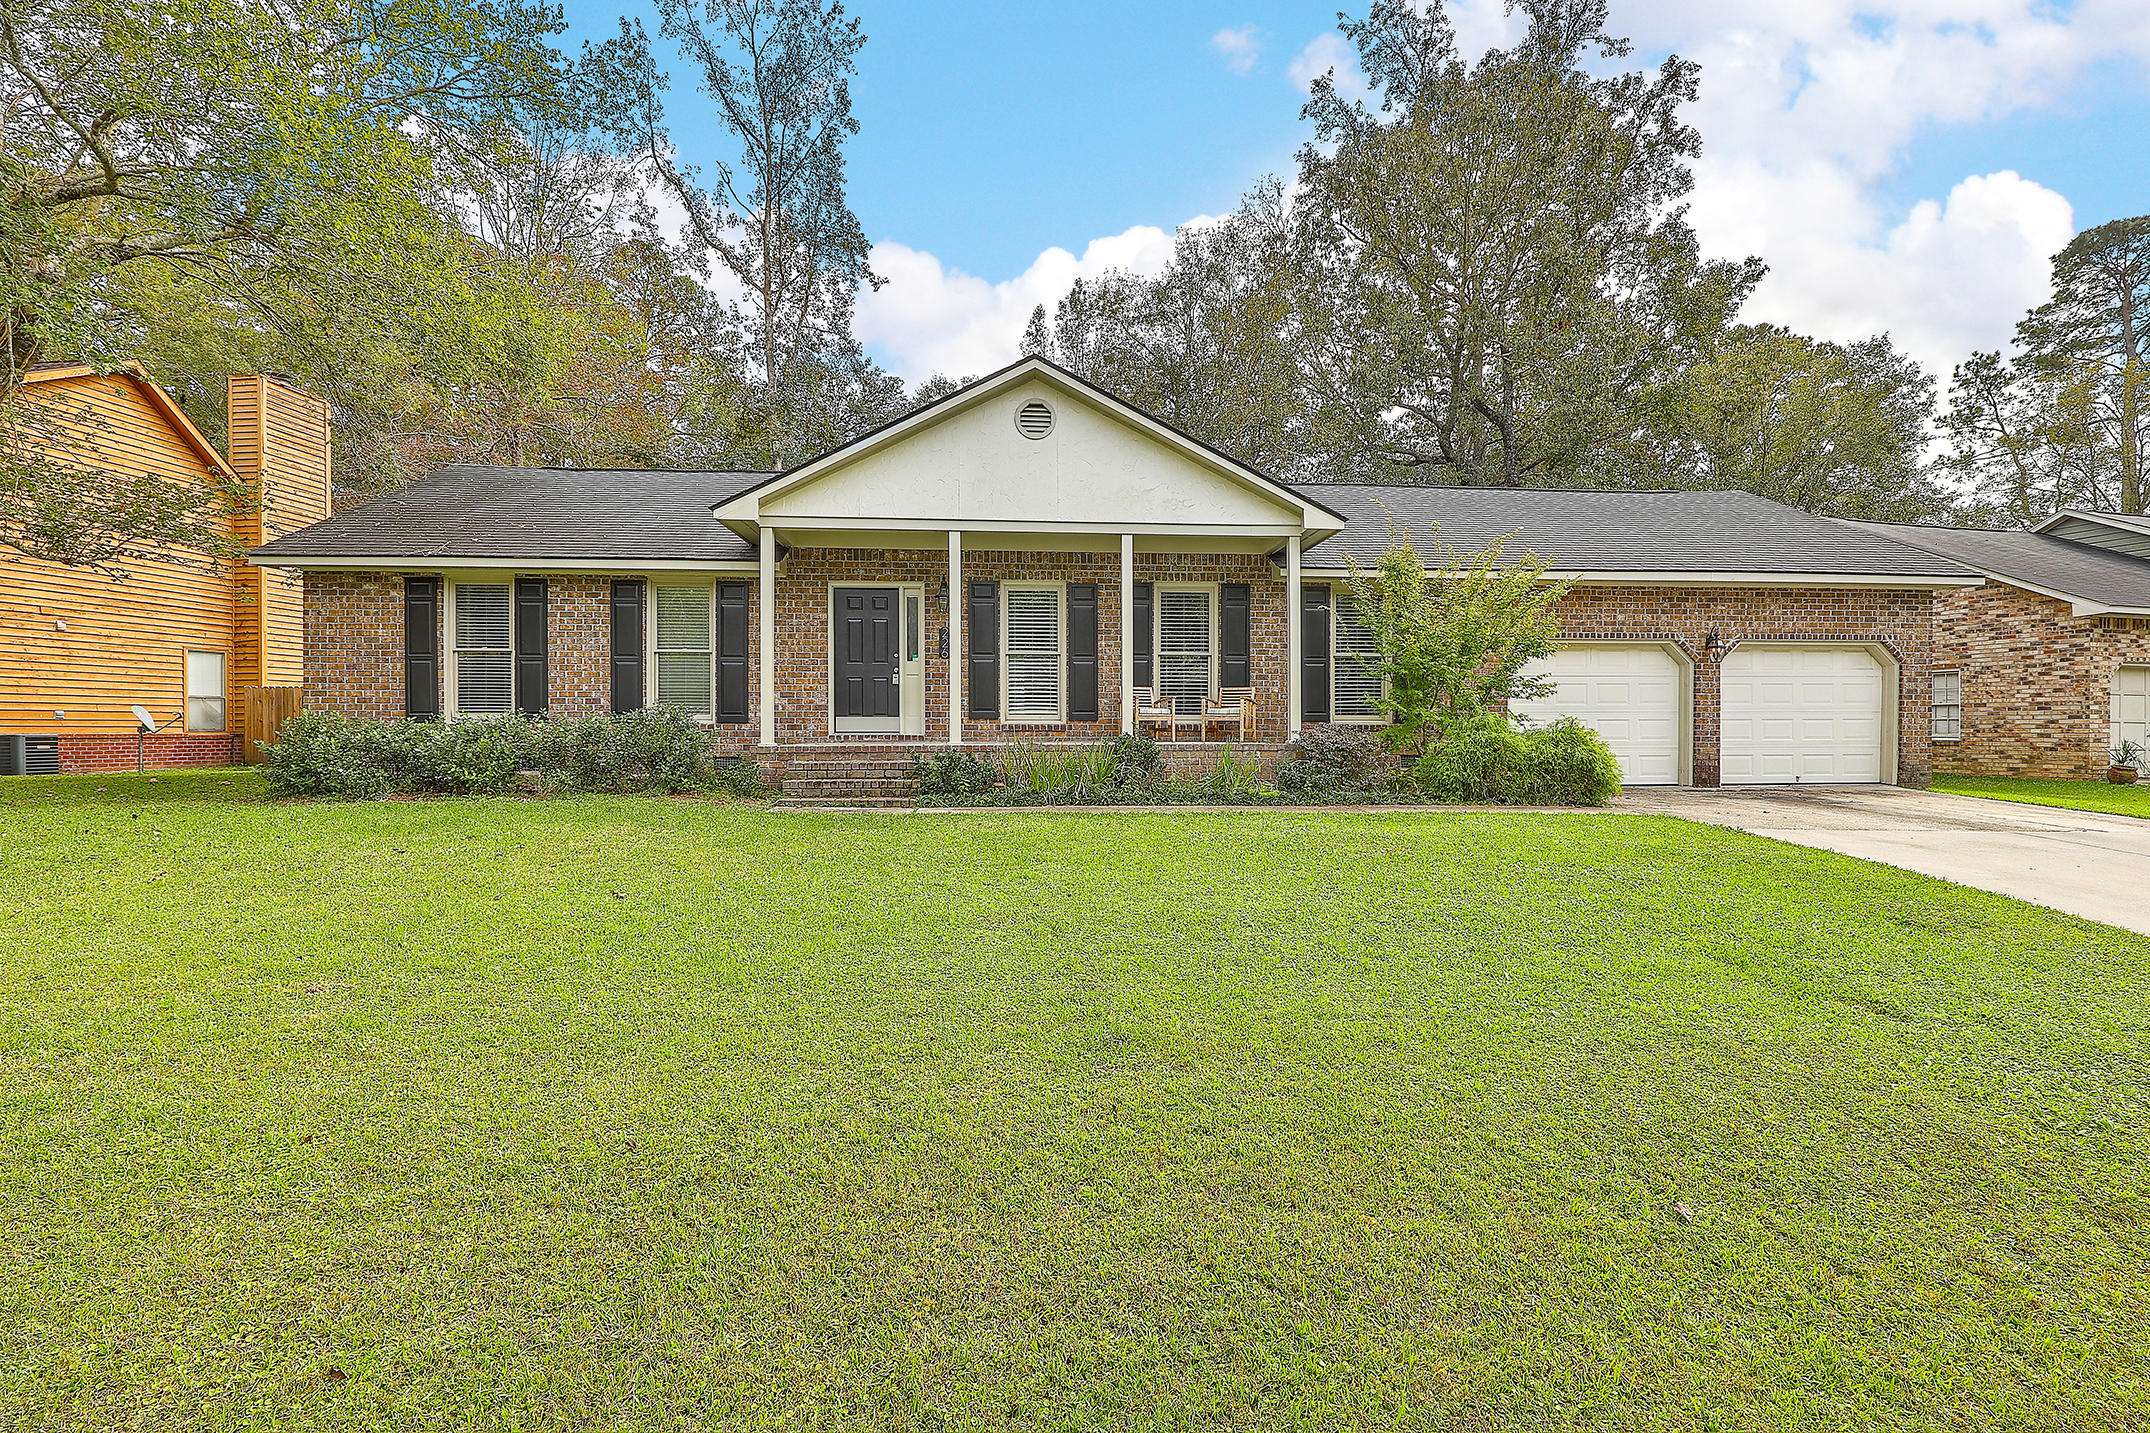 226 Savannah Round Summerville, SC 29485